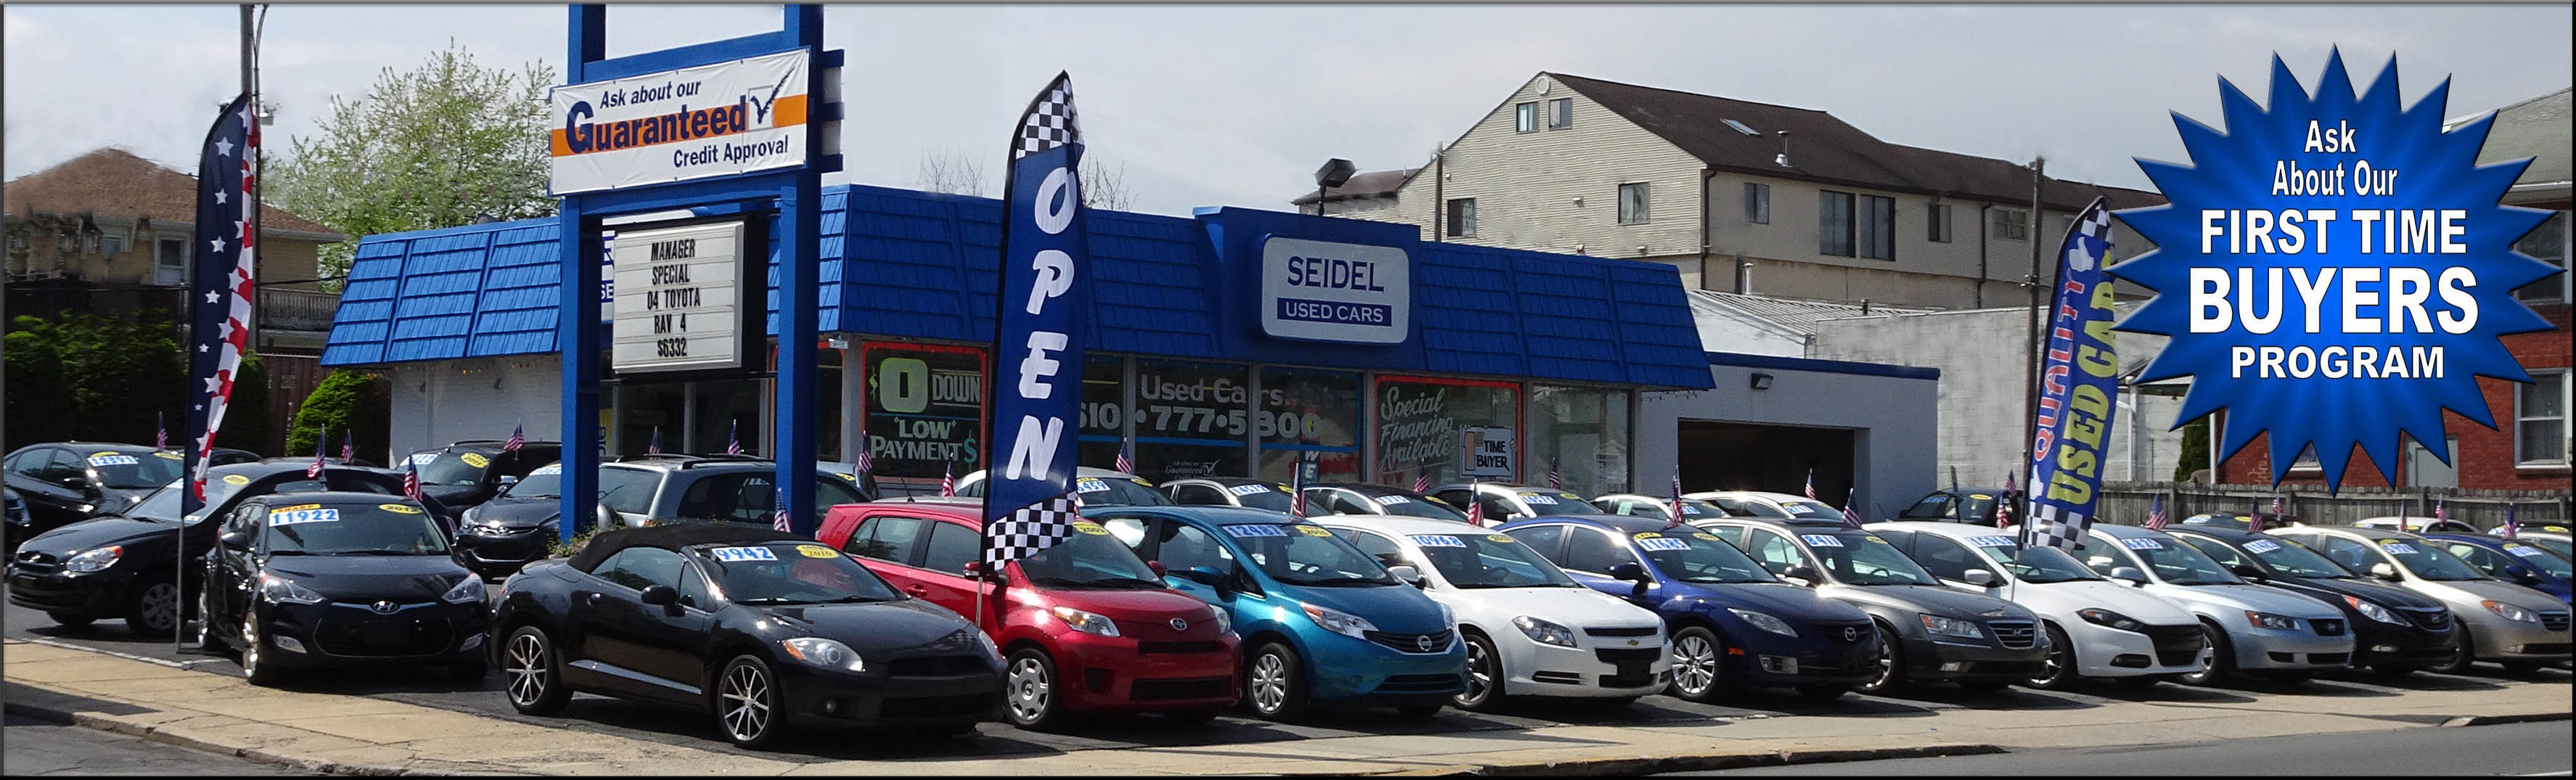 used car dealership